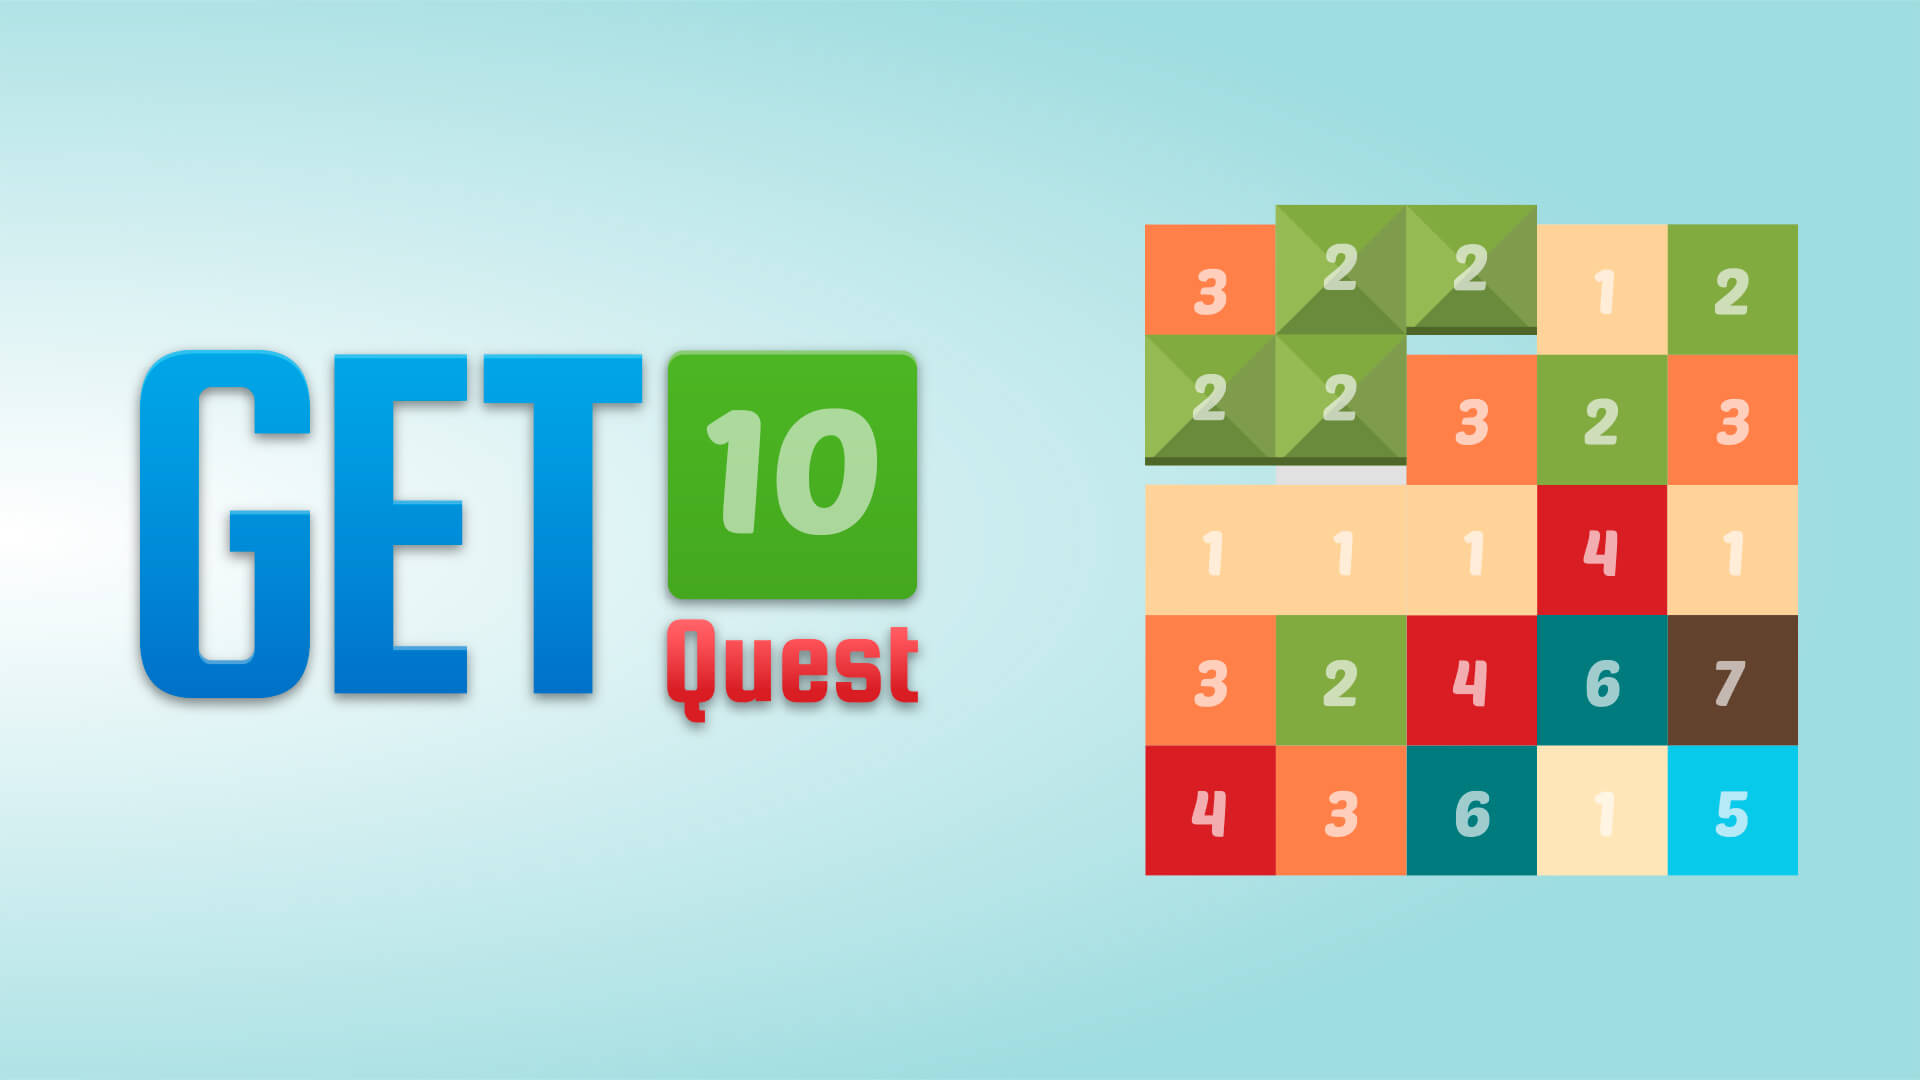 Get 10 Quest Free PC Download